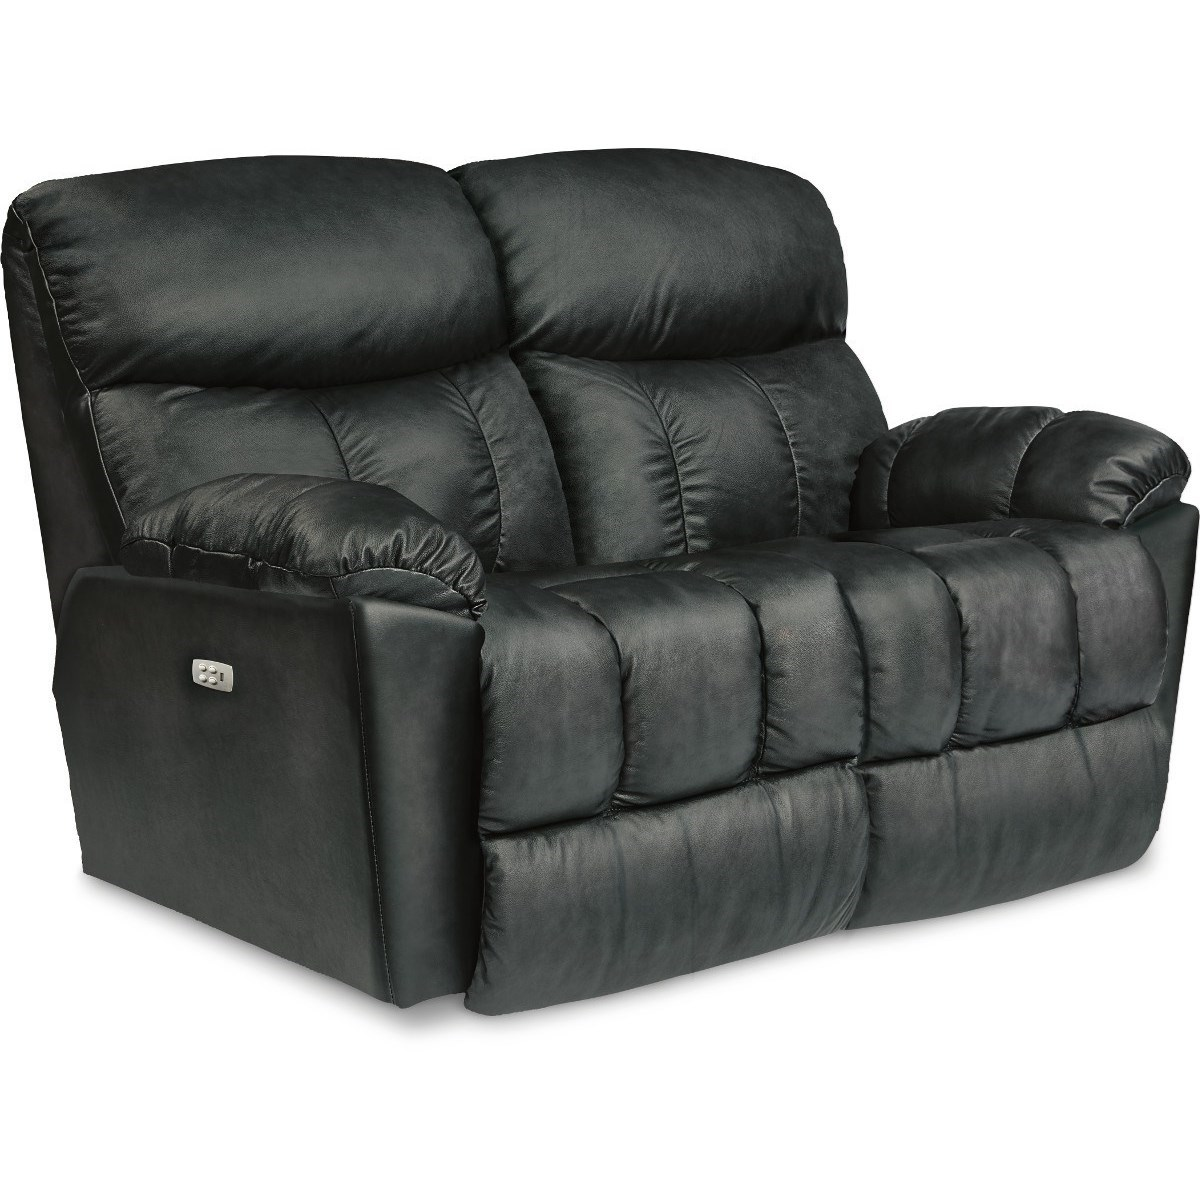 Morrison Power Reclining Loveseat w/ Pwr Headrests by La-Z-Boy at Bennett's Furniture and Mattresses